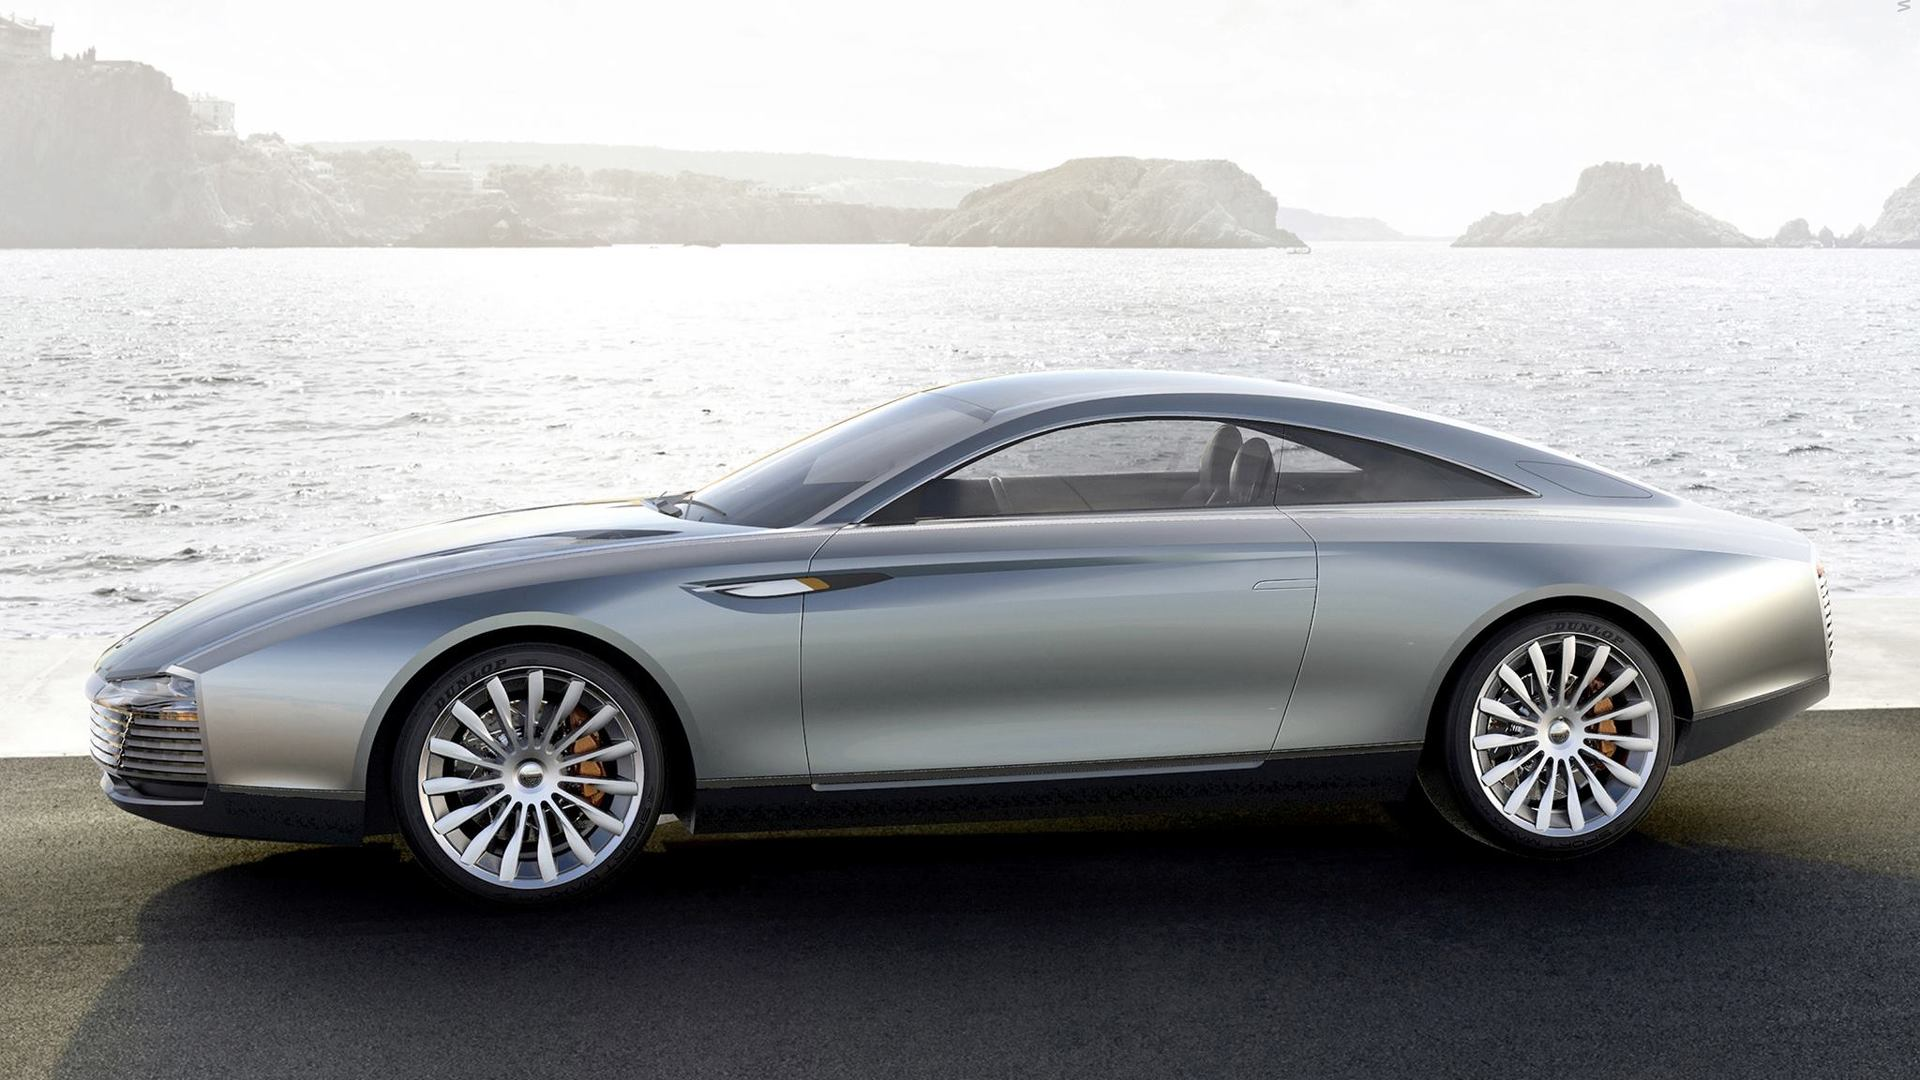 Russian coachbuilder has big plans for Aston Martin DB9